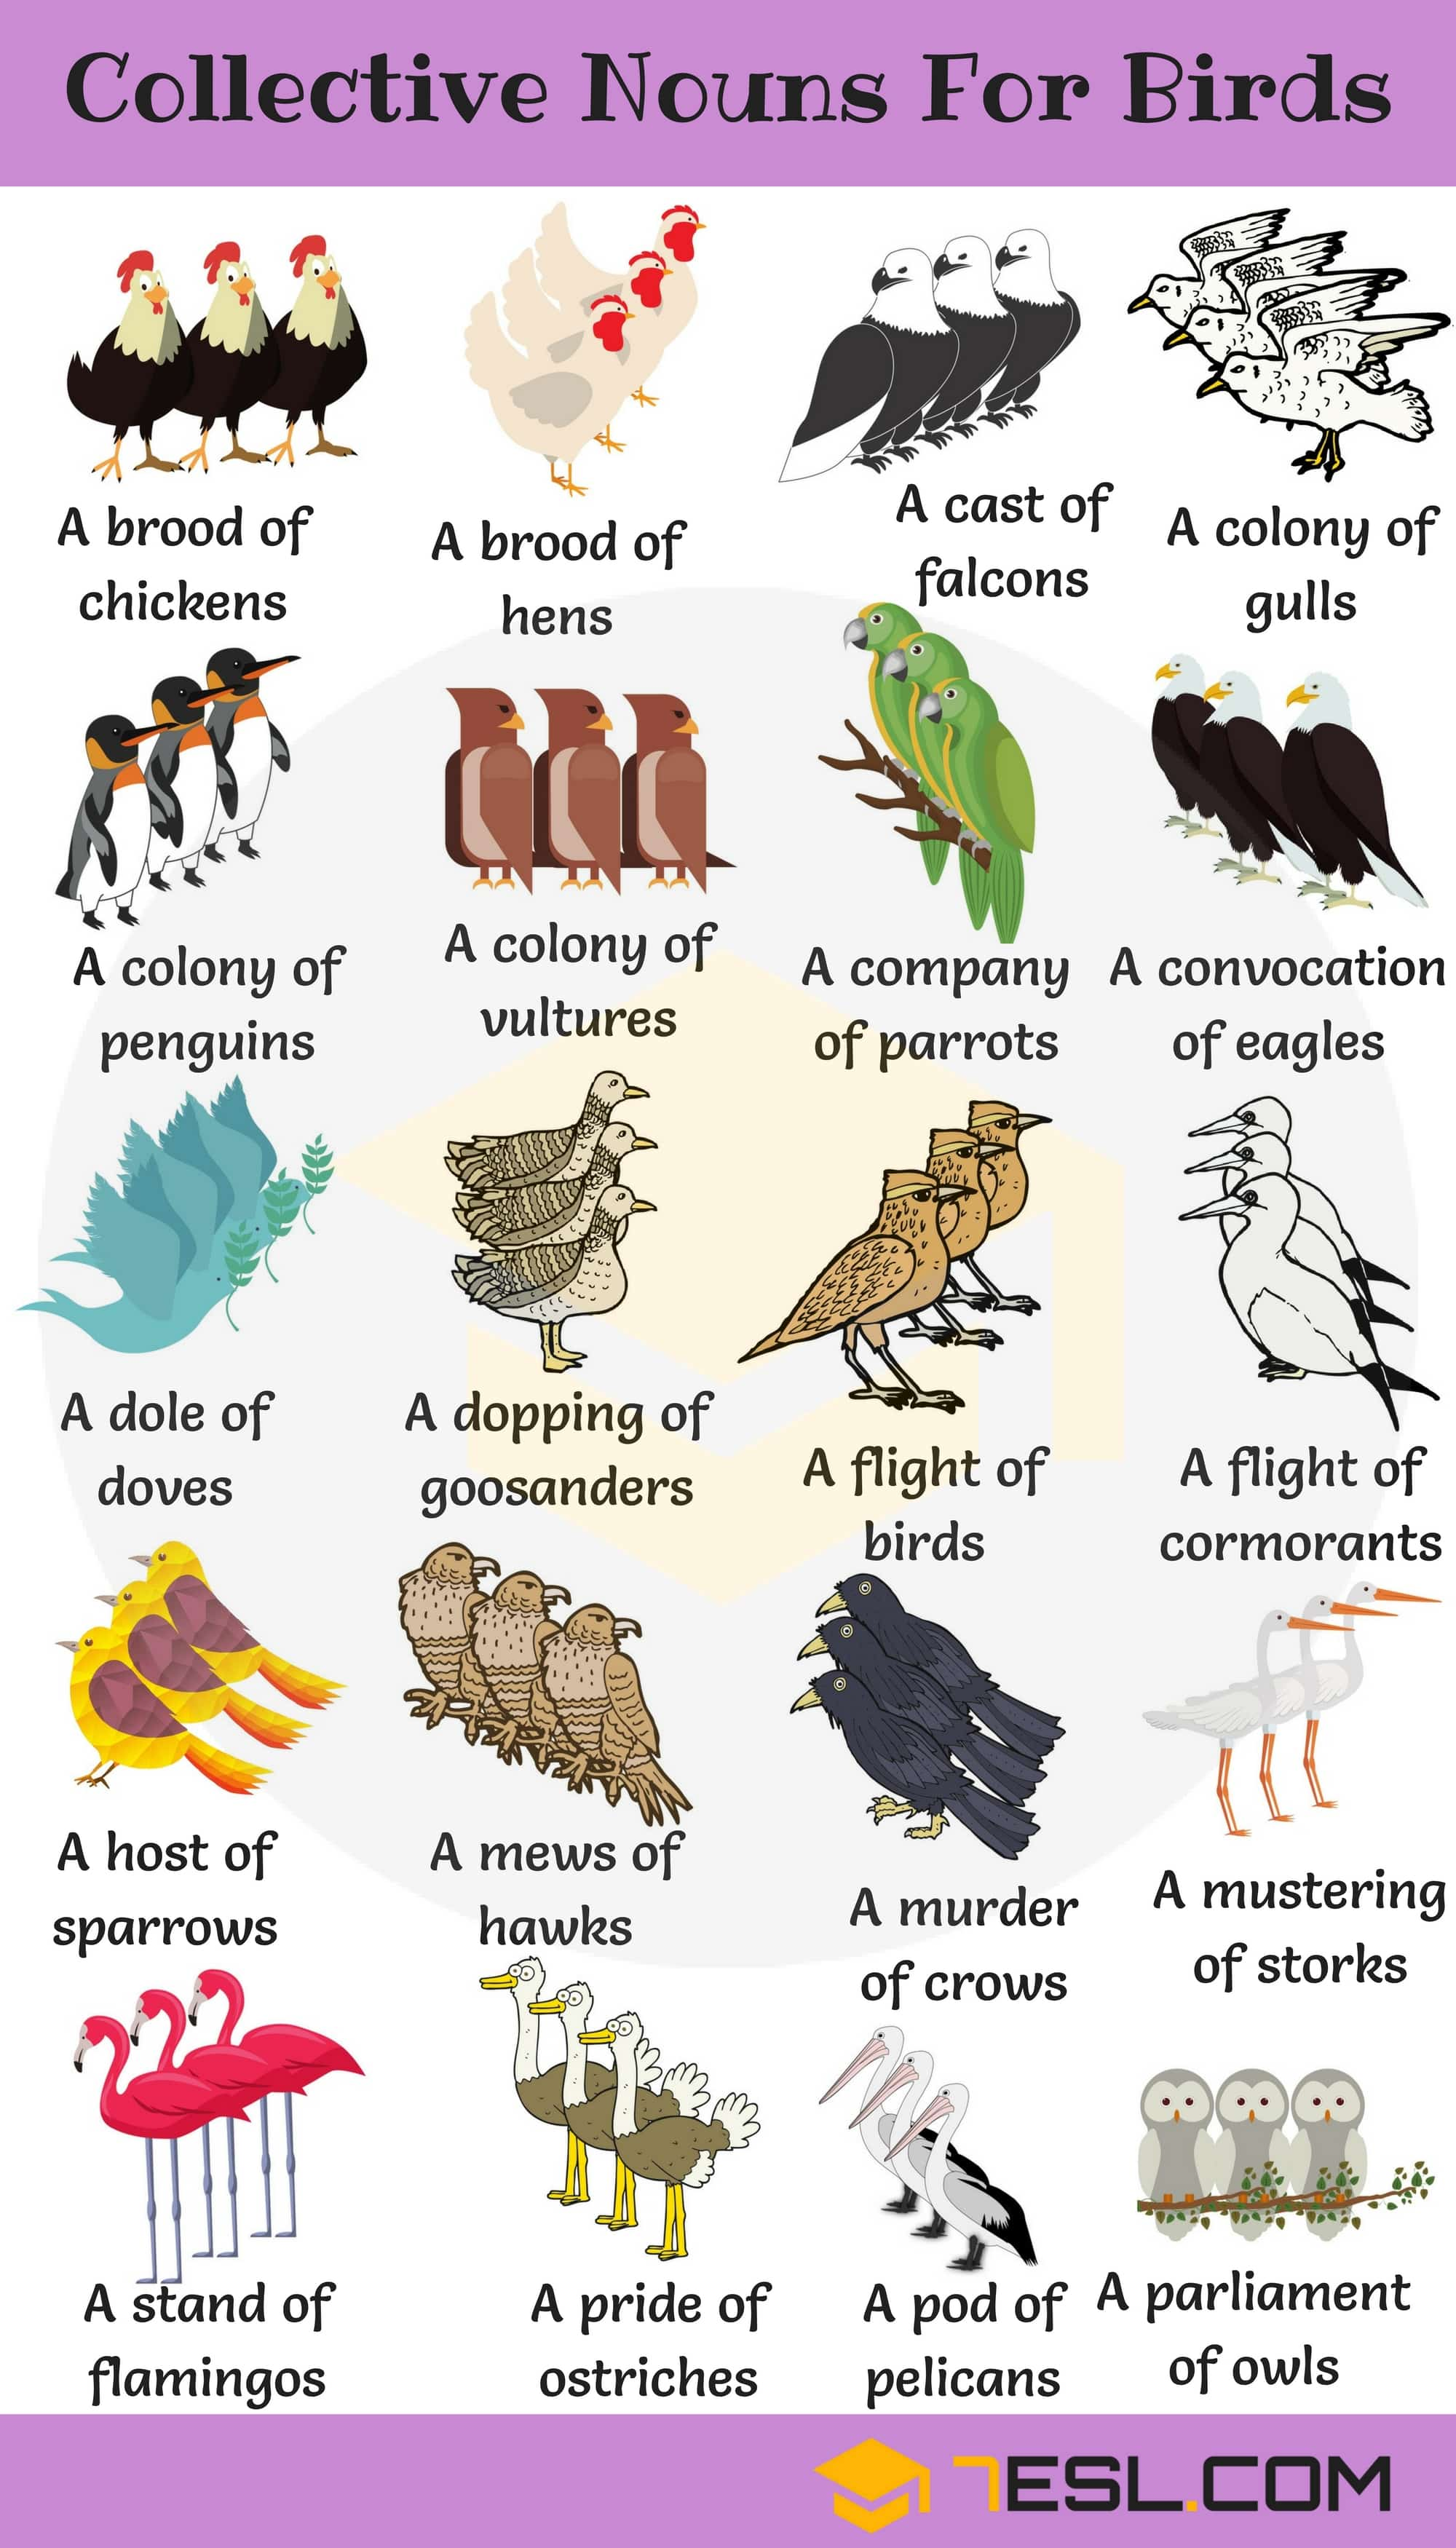 Animal Group Names: 250+ Collective Nouns for Animals 2